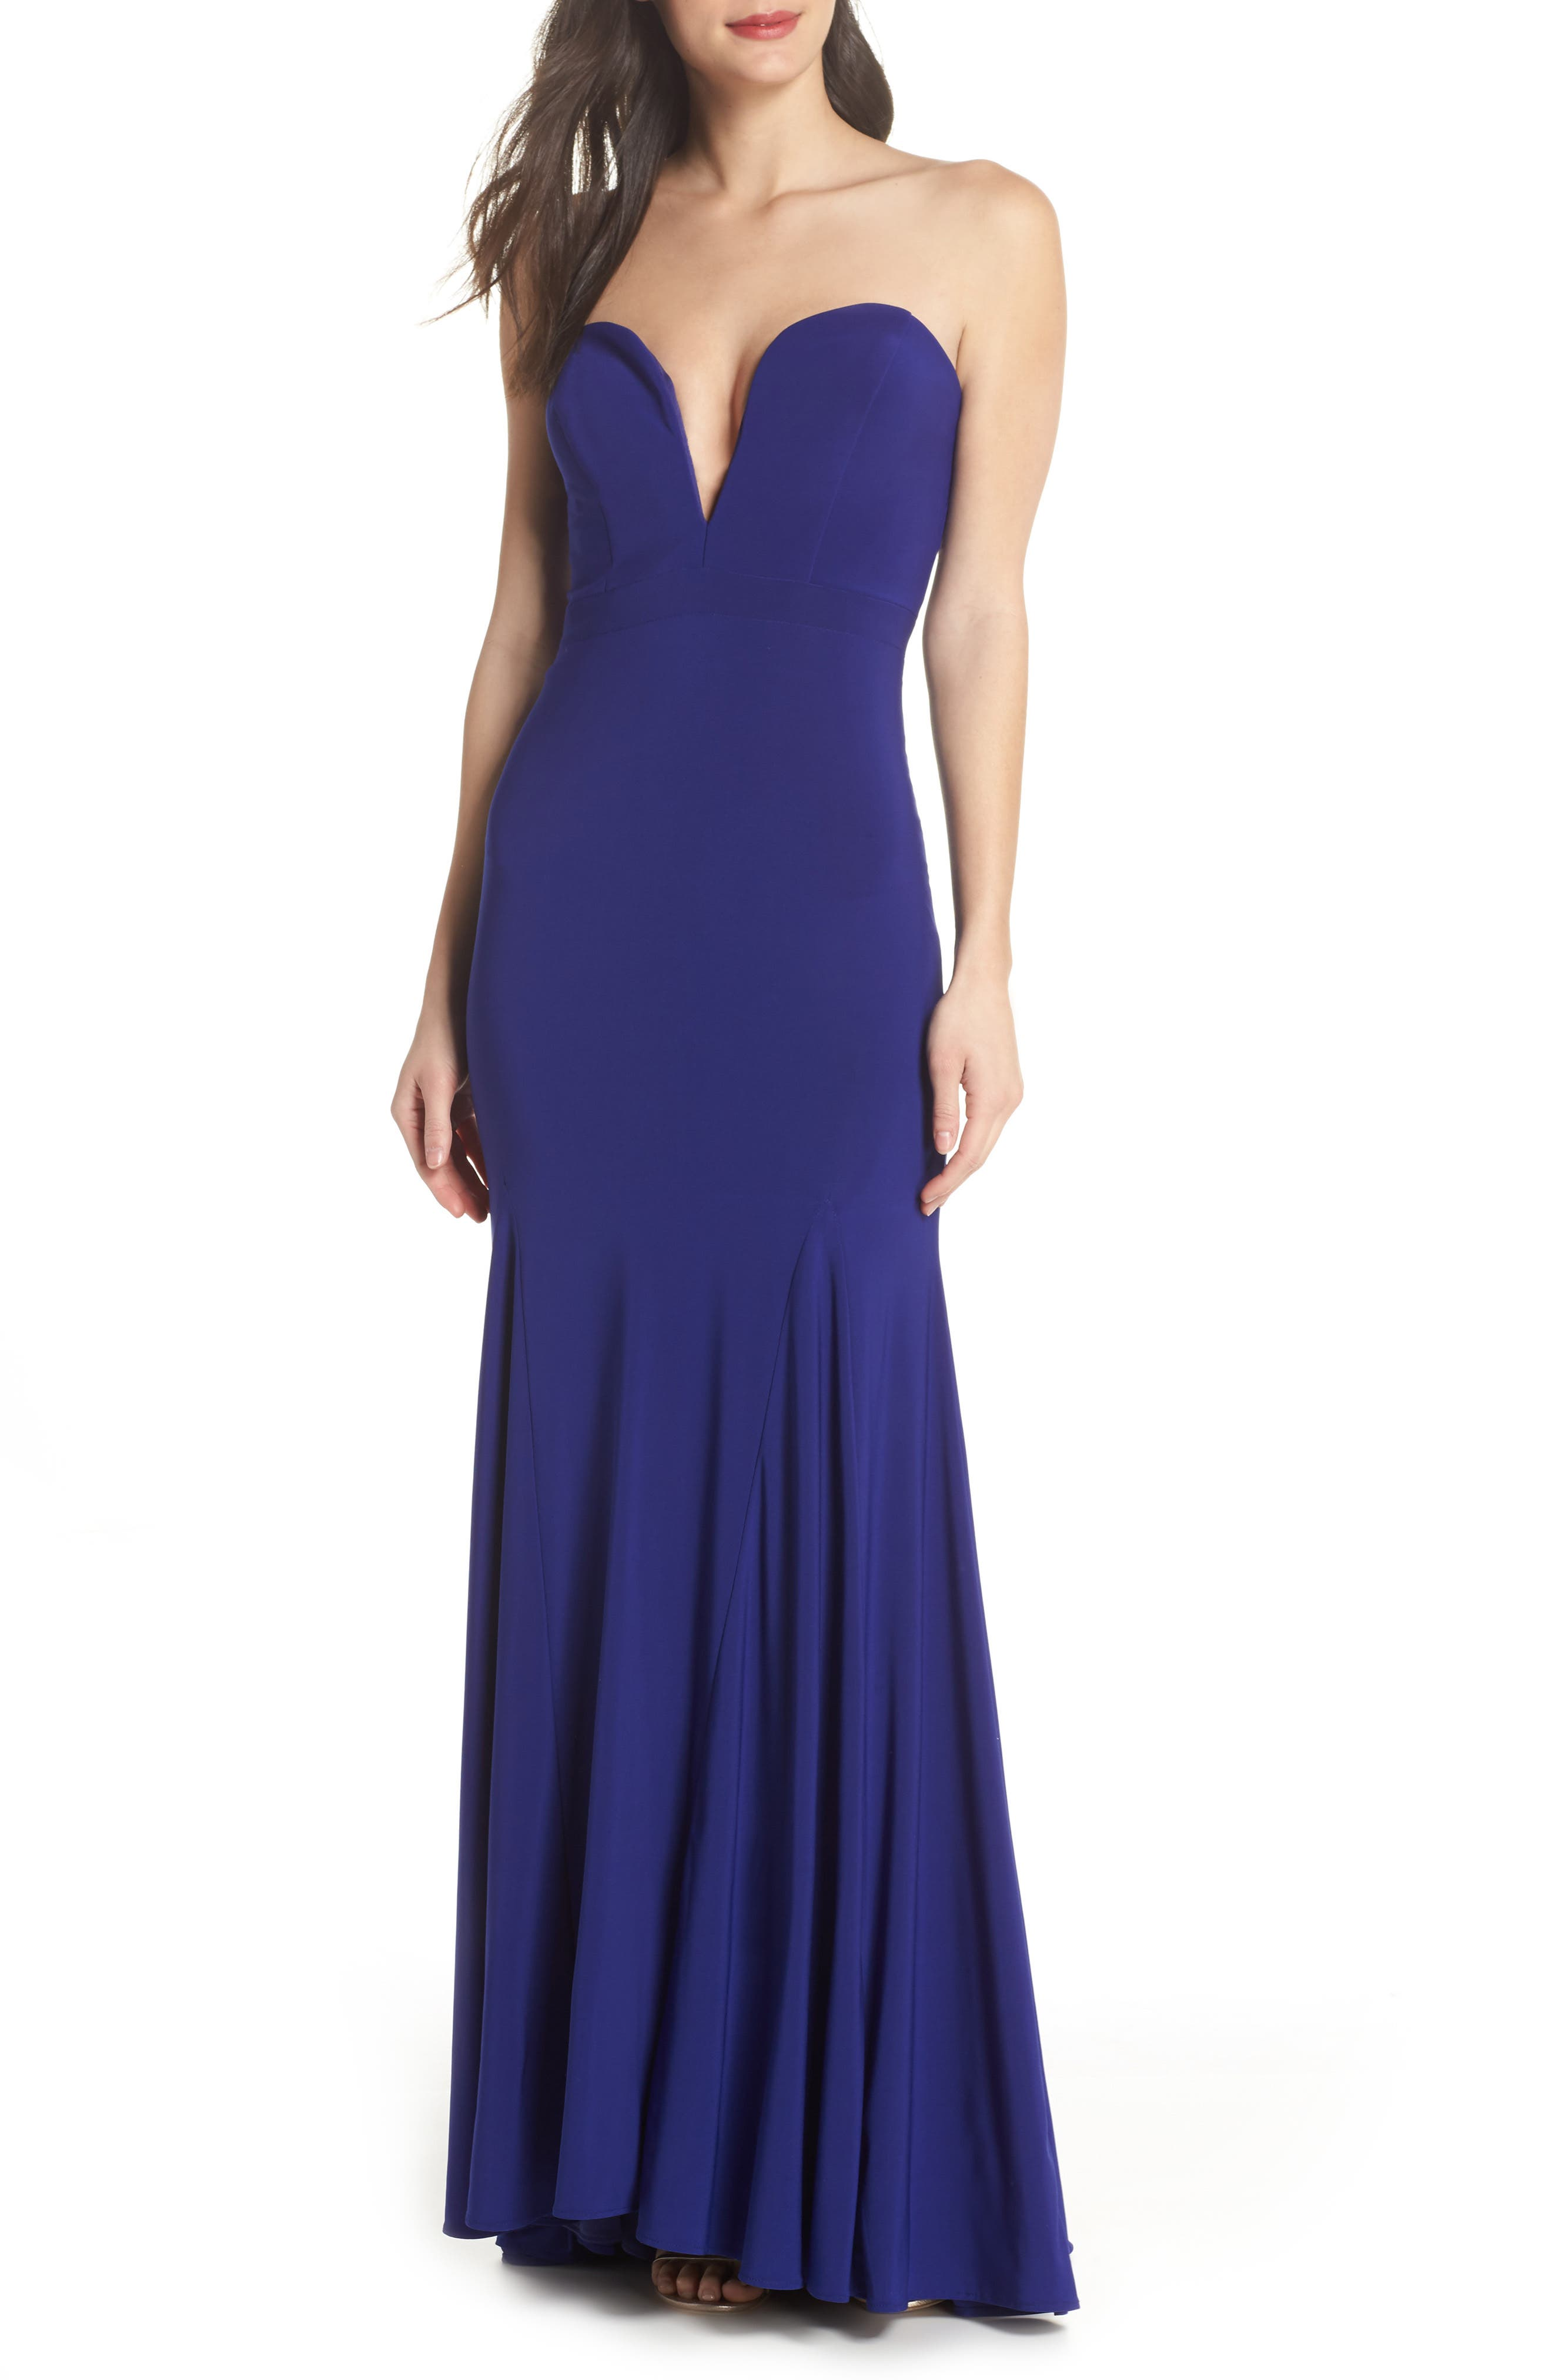 Bustier Strapless Gown,                             Main thumbnail 1, color,                             Electric Blue